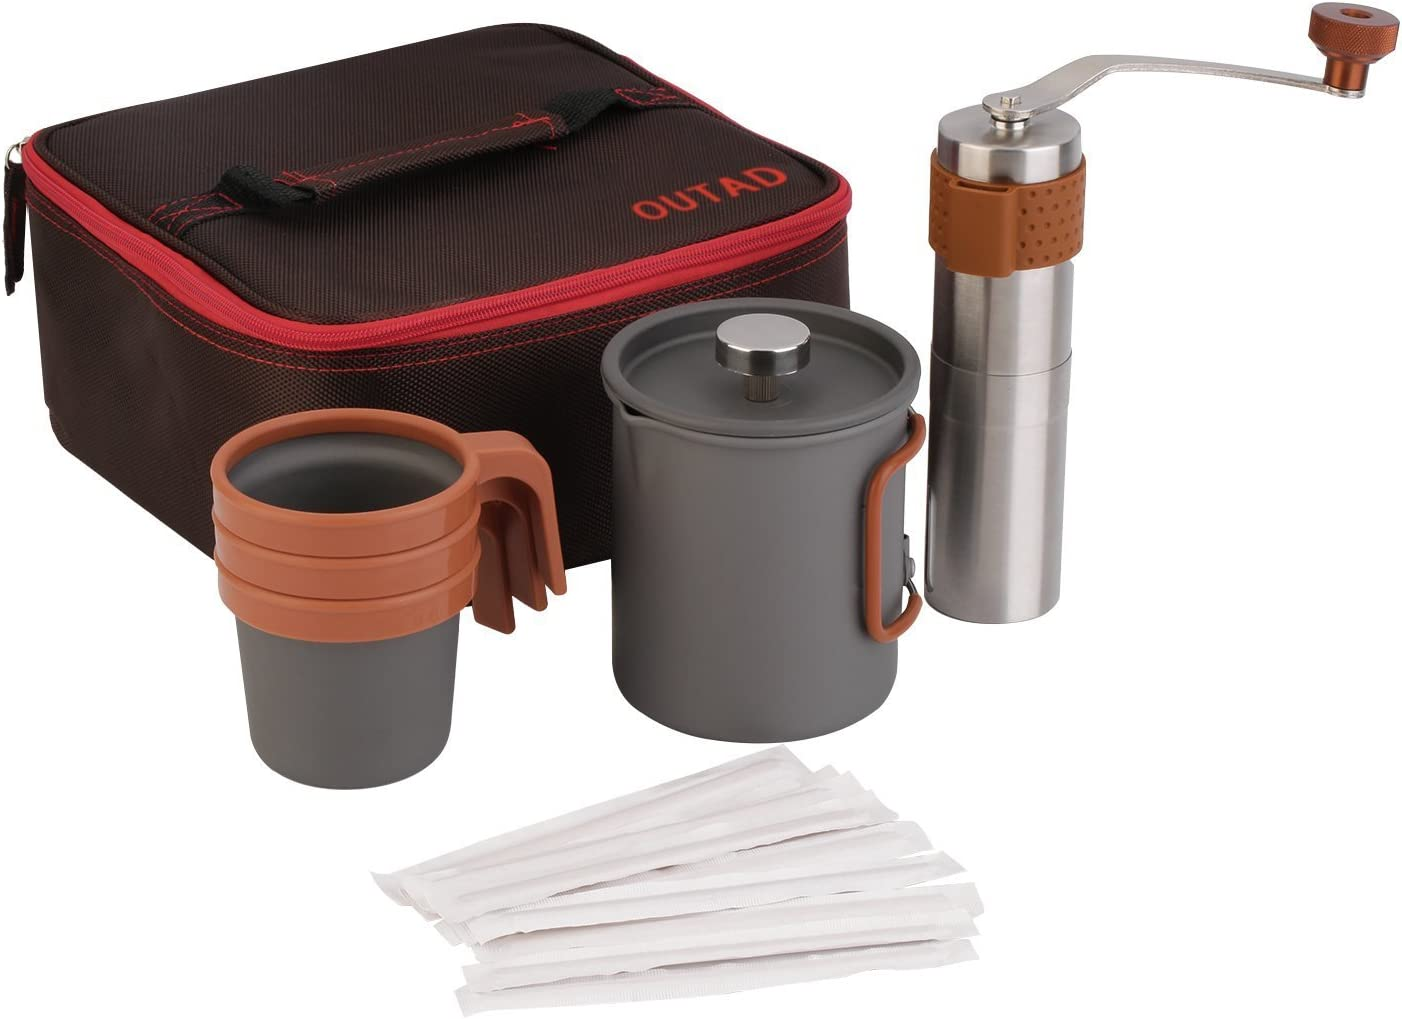 OUTAD Portable Coffee Maker Set 20fl.oz French Press Coffee Maker Manual Coffee Grinder 3 x 10fl.oz Mugs Carry Bag